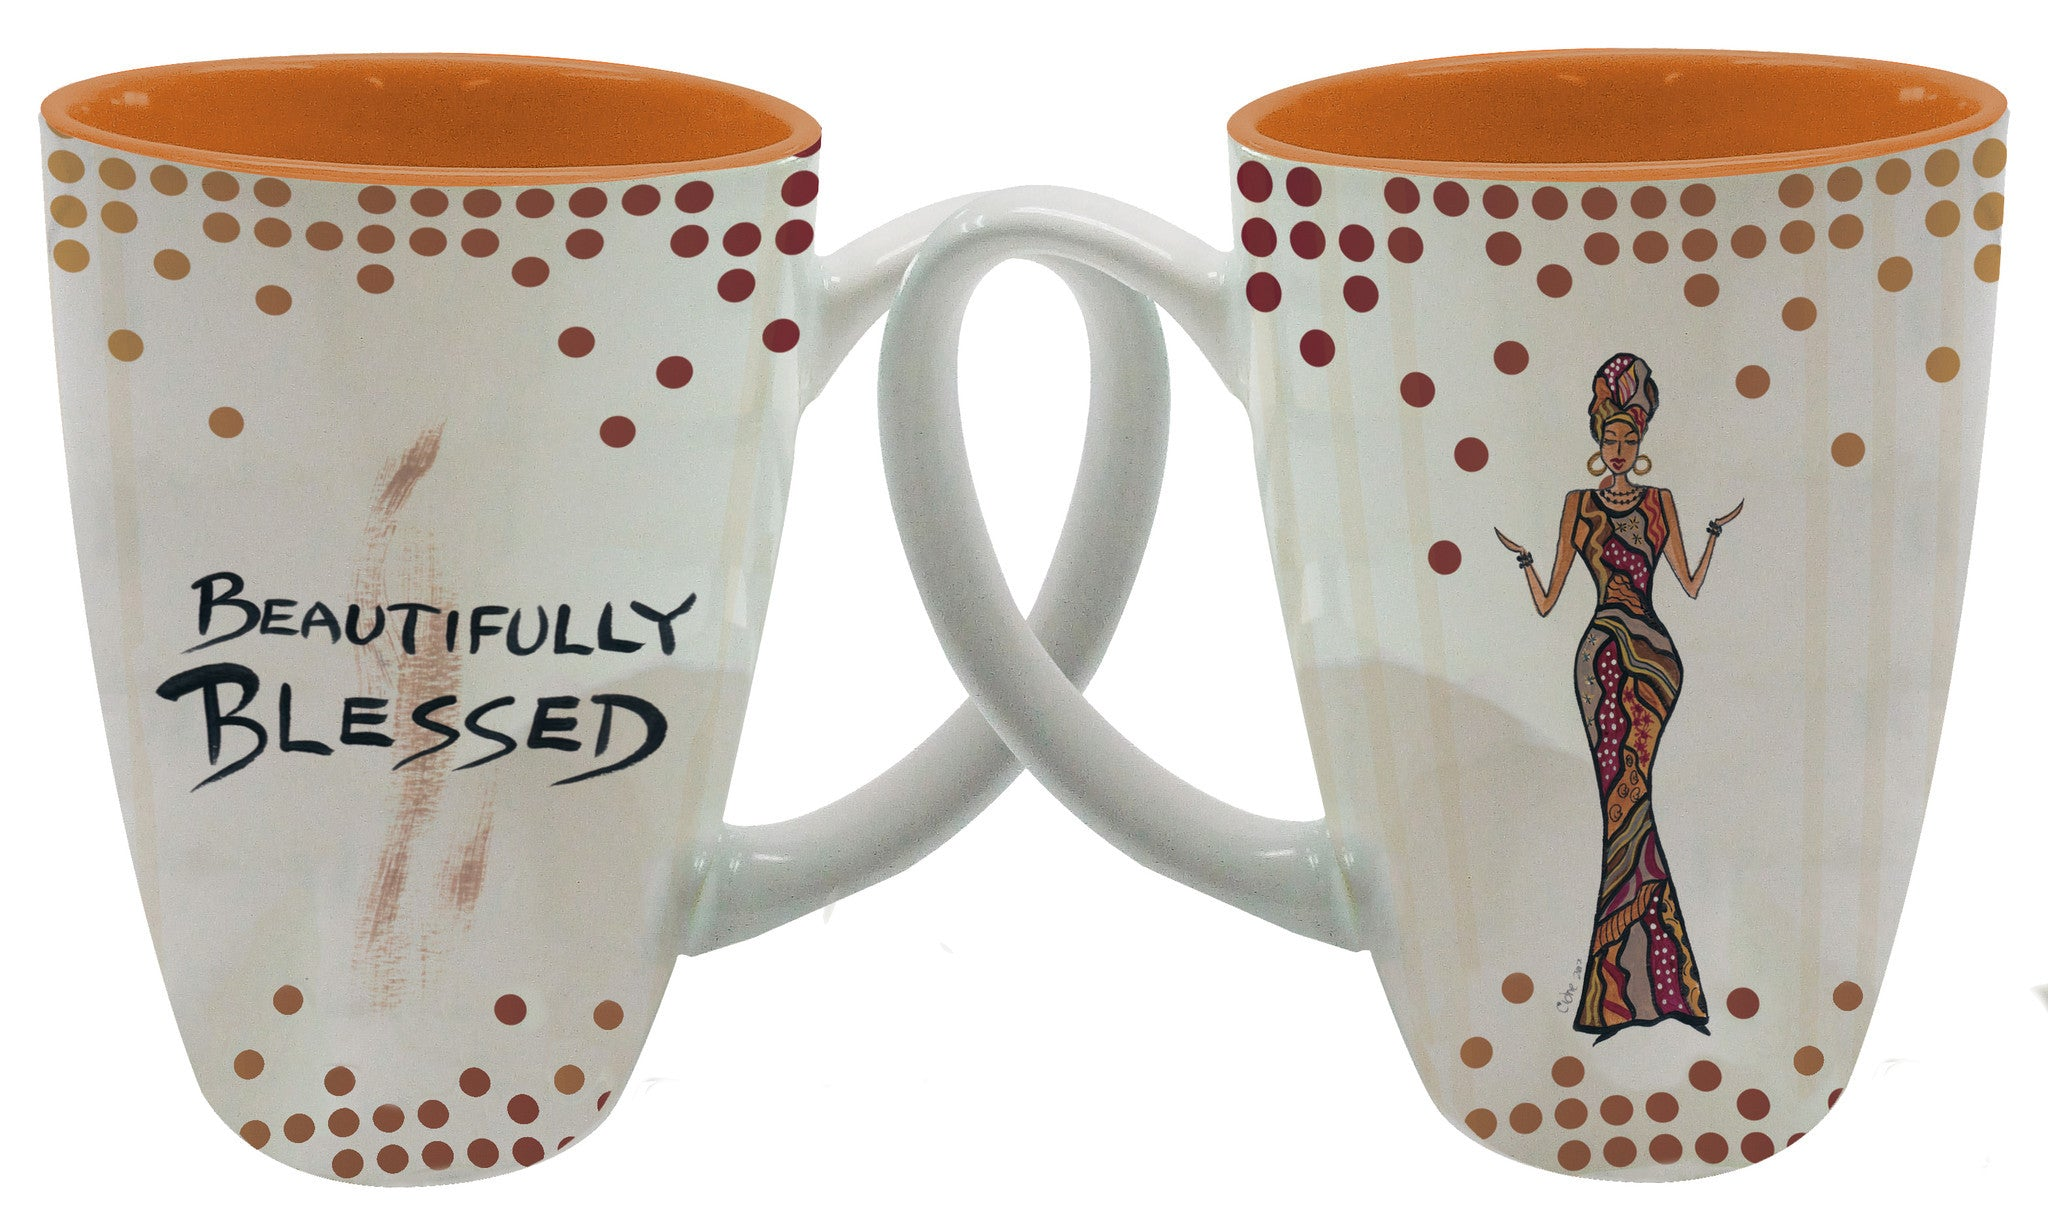 Beautifully Blessed Latte Mug by Cidne Wallace